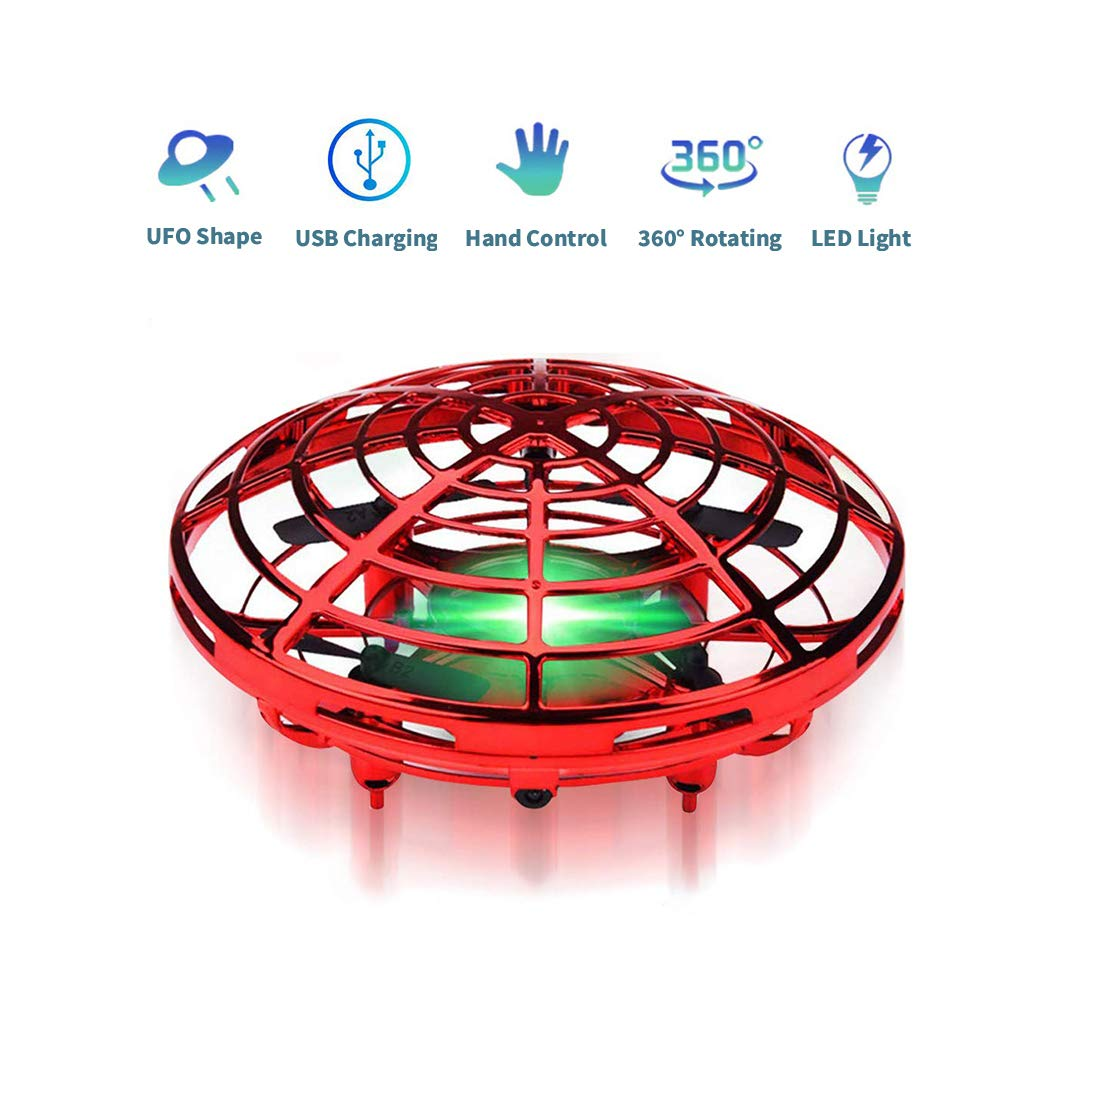 MuD-A Flying Ball Toy Drones,Hand Operated Drones for Kids or Adults - Scoot Flying Ball Drone,with 360°Rotating and Flashing LED Lights Mini Drone,for Boys and Girls, Kids Gifts (Red) by MuD-A (Image #1)